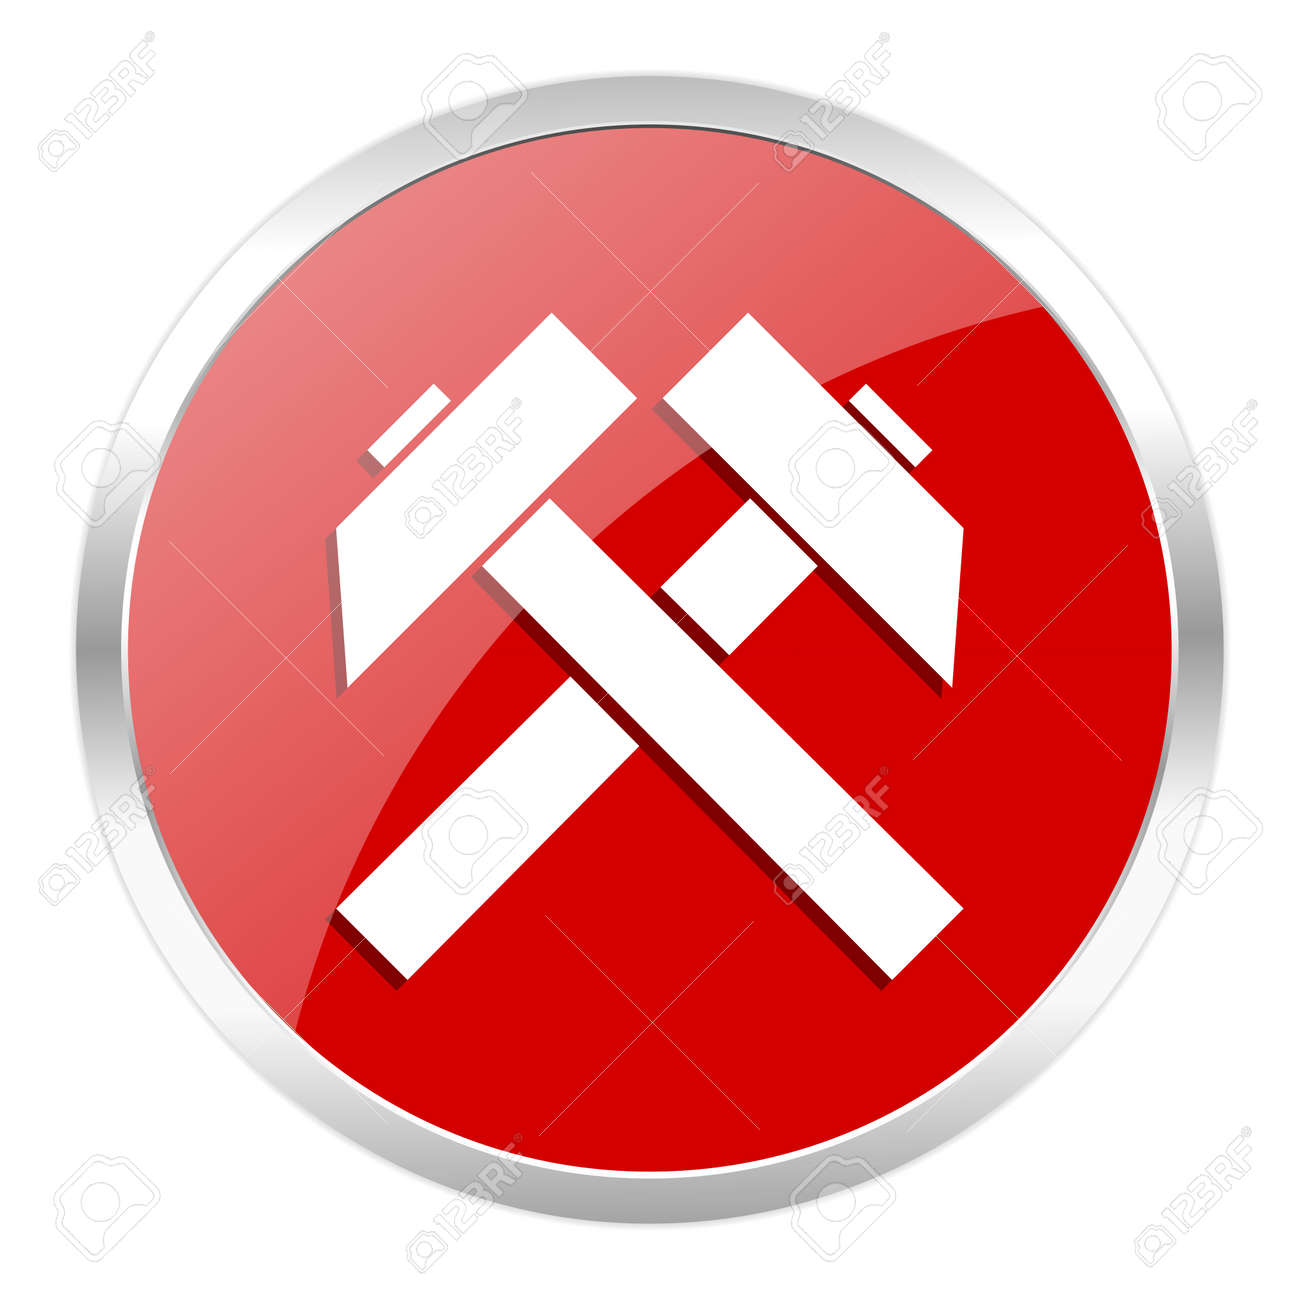 red web button isolated Stock Photo - 27369055